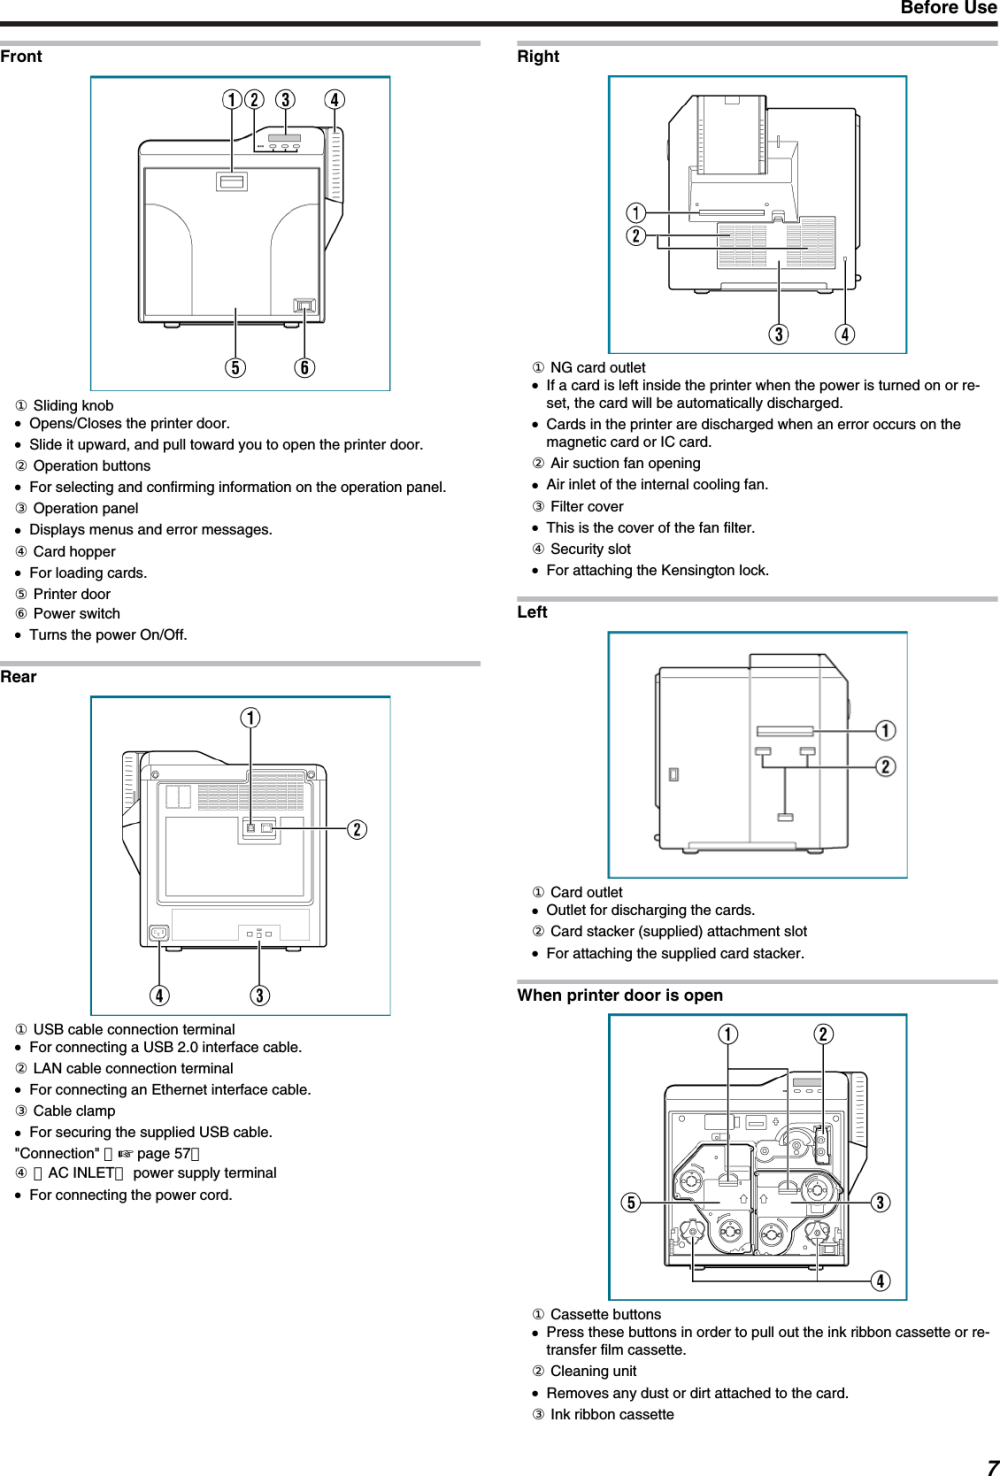 medium resolution of 1996 lt1 vats wiring diagram engine test stand wiring lt1 optispark distributor diagram